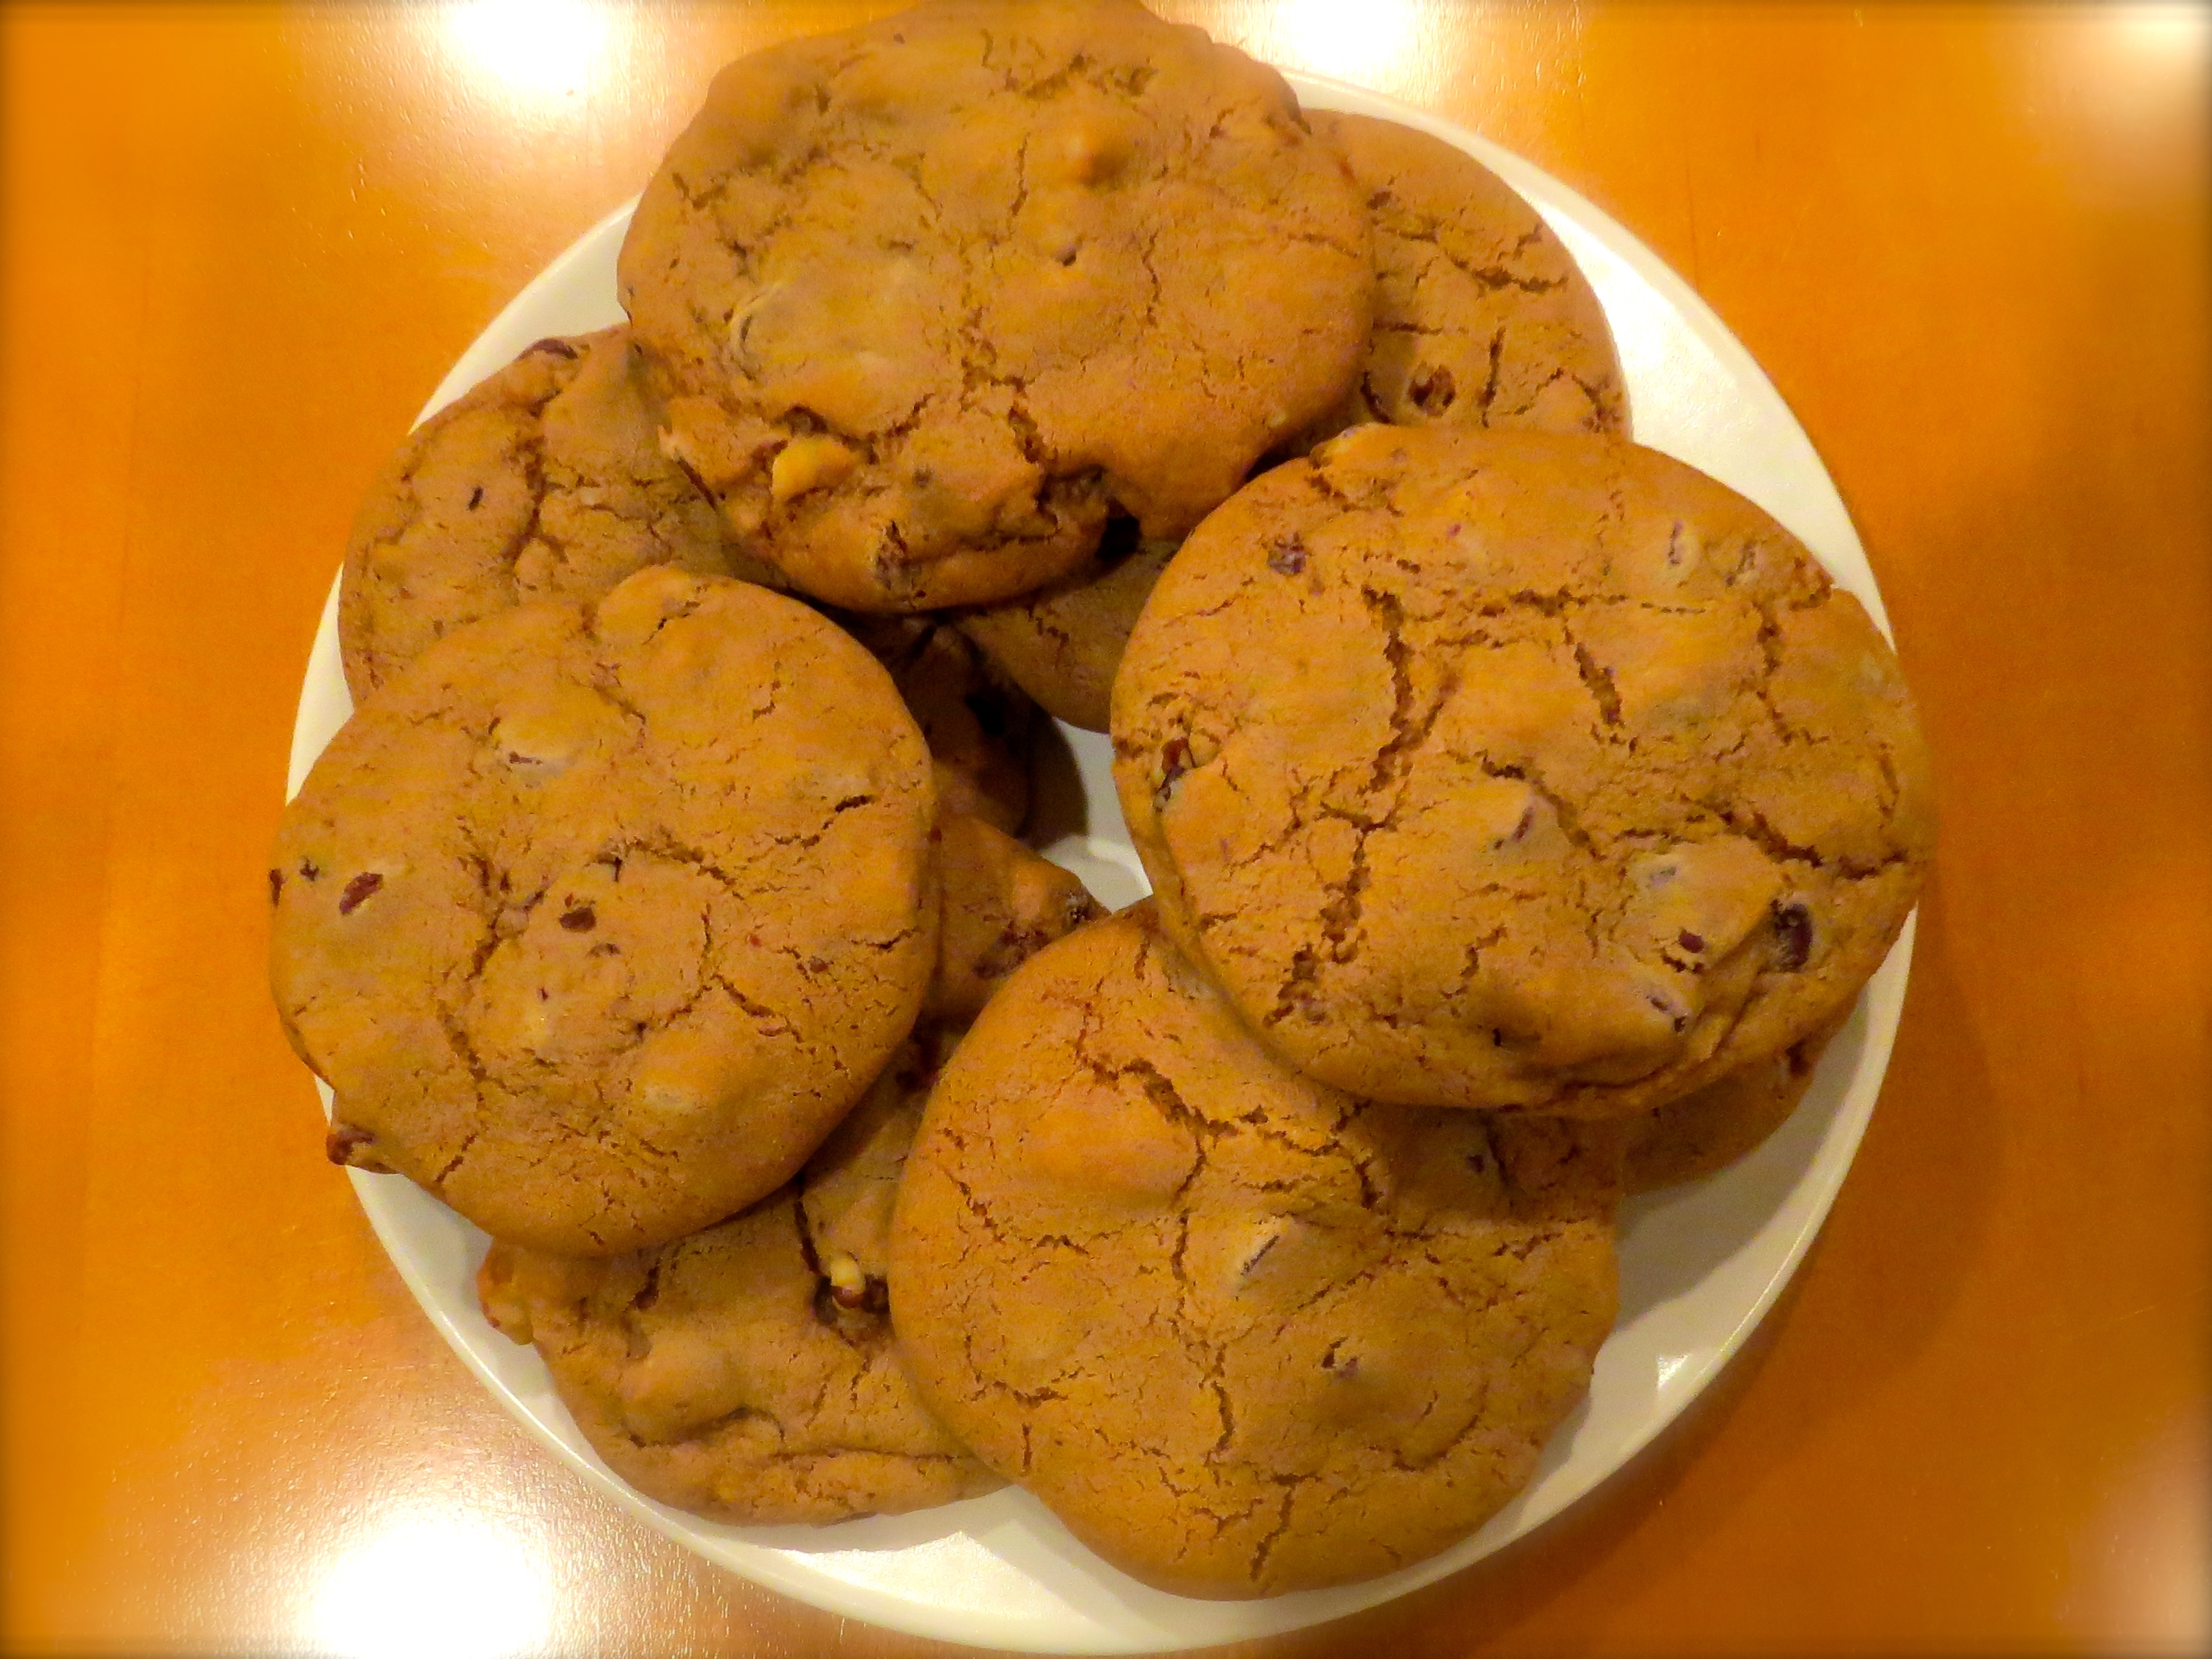 Dessert: Mrs. Lester's Chocolate Chip Cookies. She shared the recipe with me. I'll share it with you.